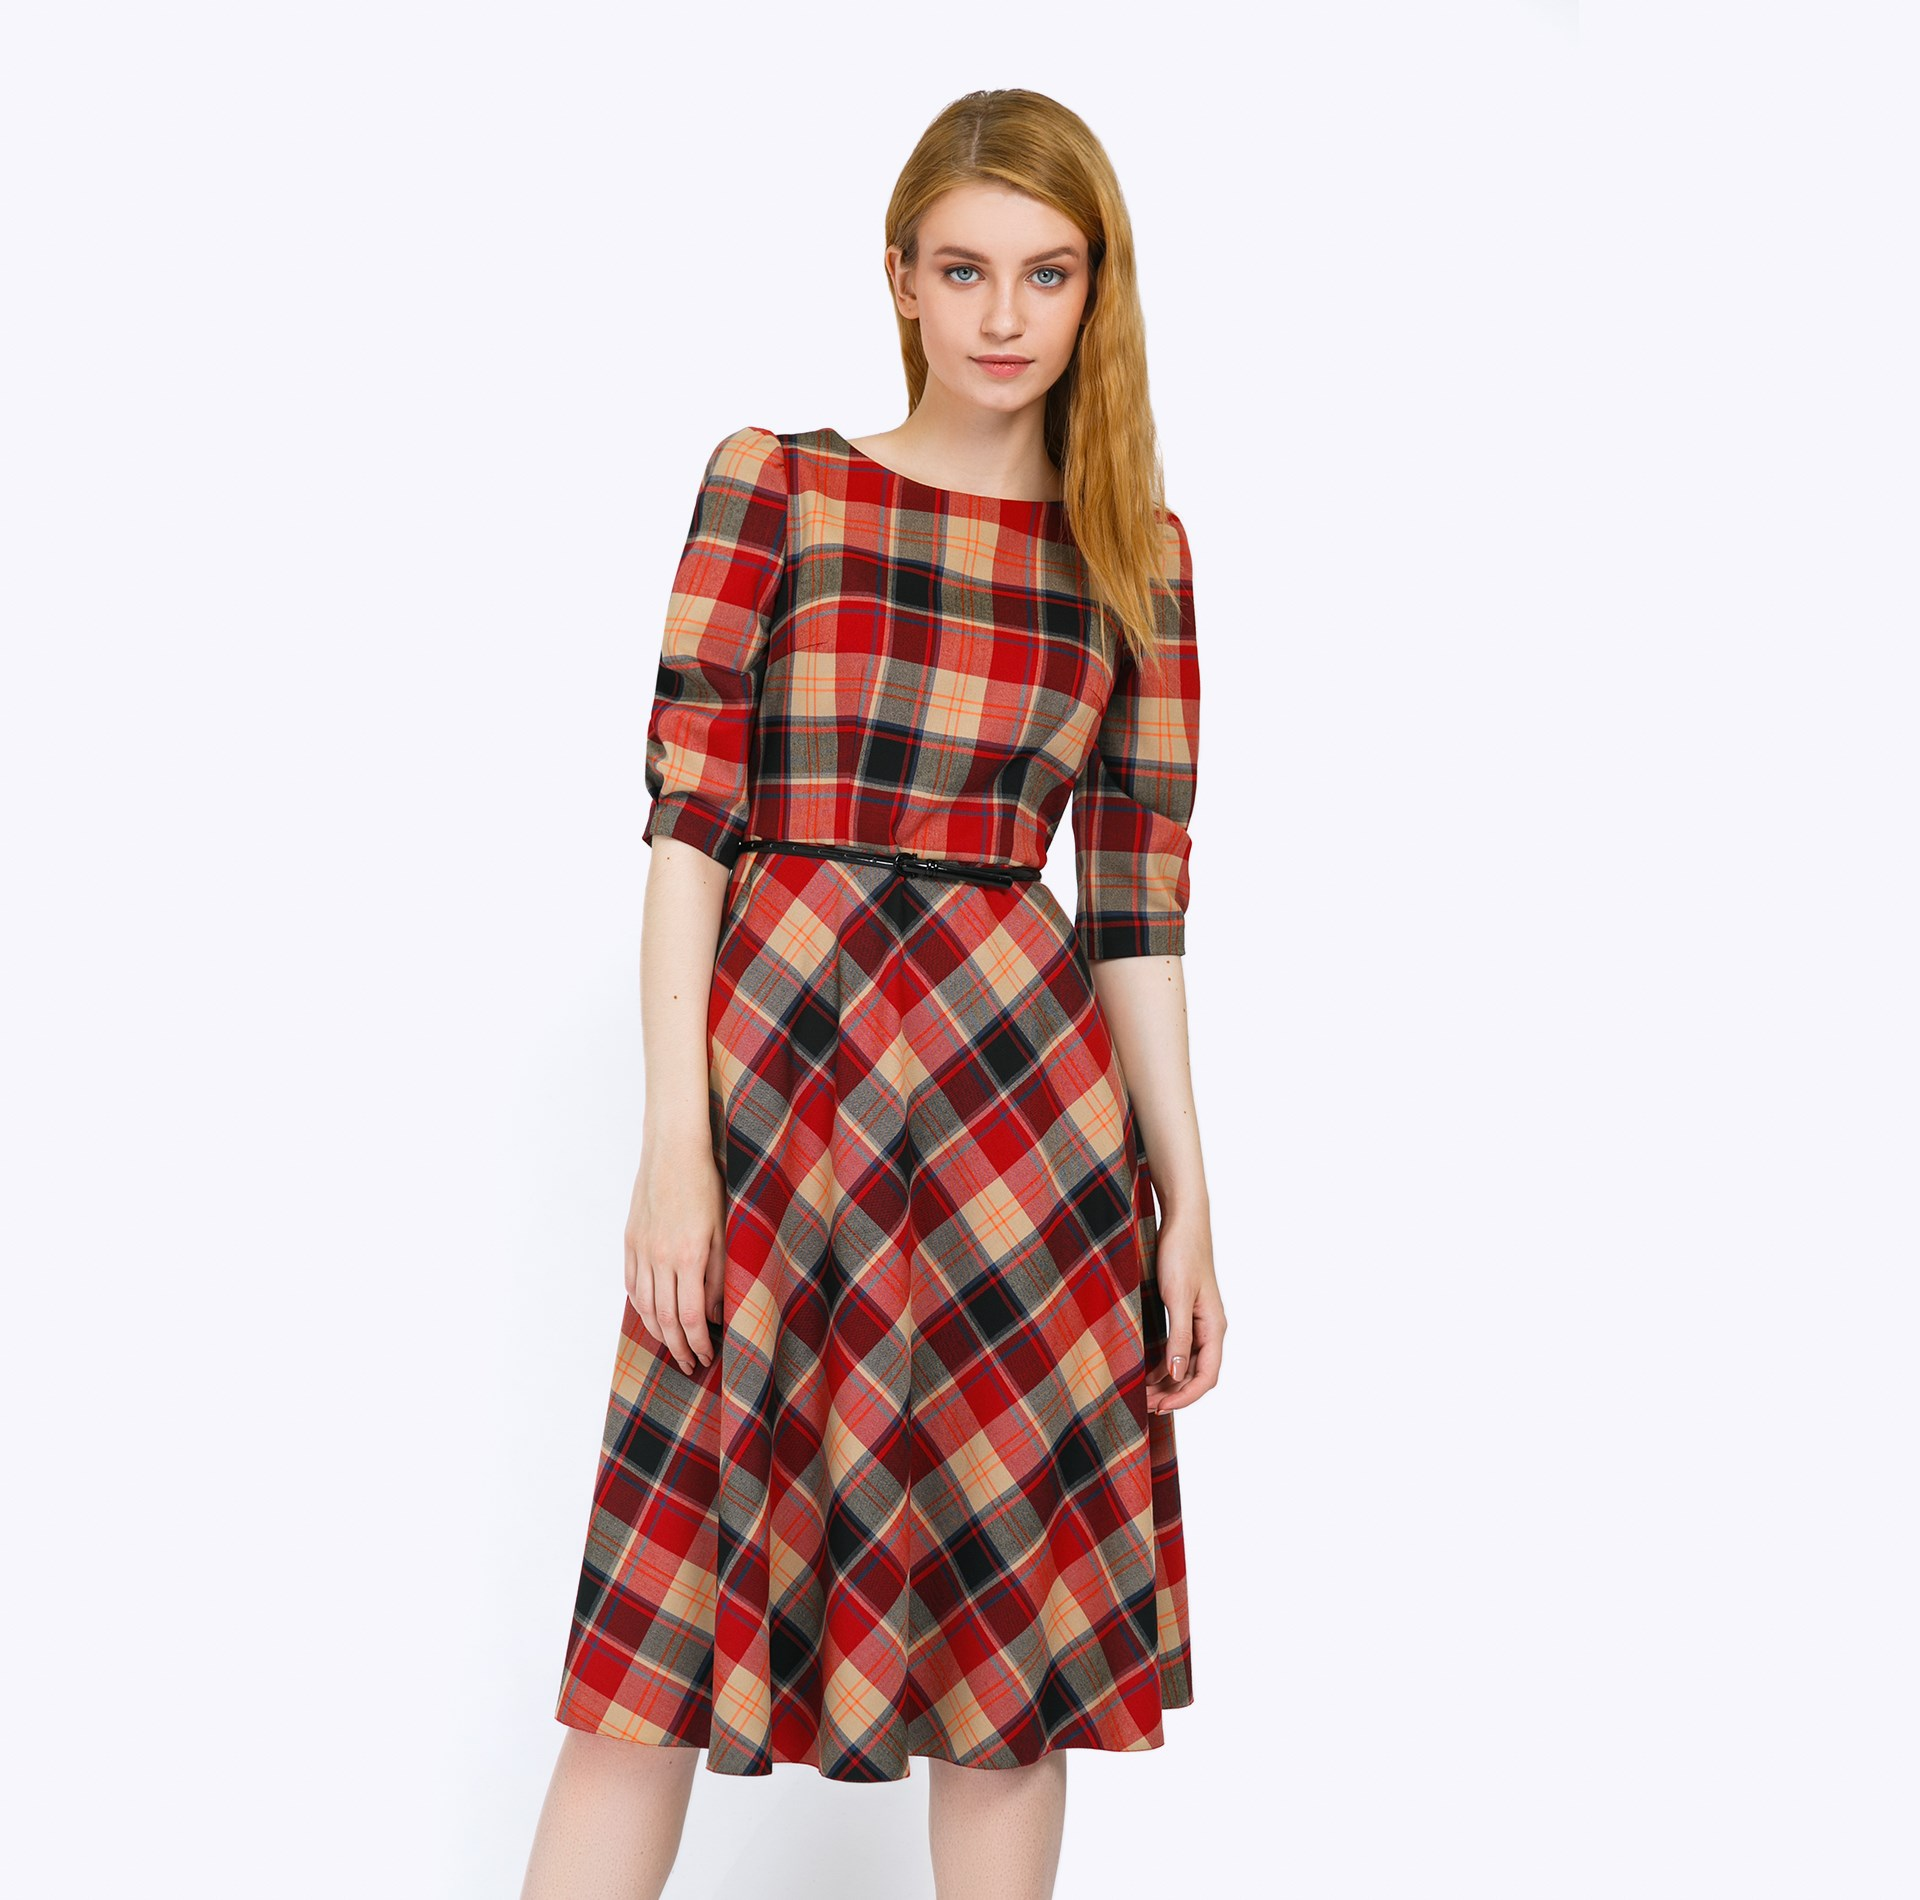 Dress A-line plaid self belted button up plaid print dress